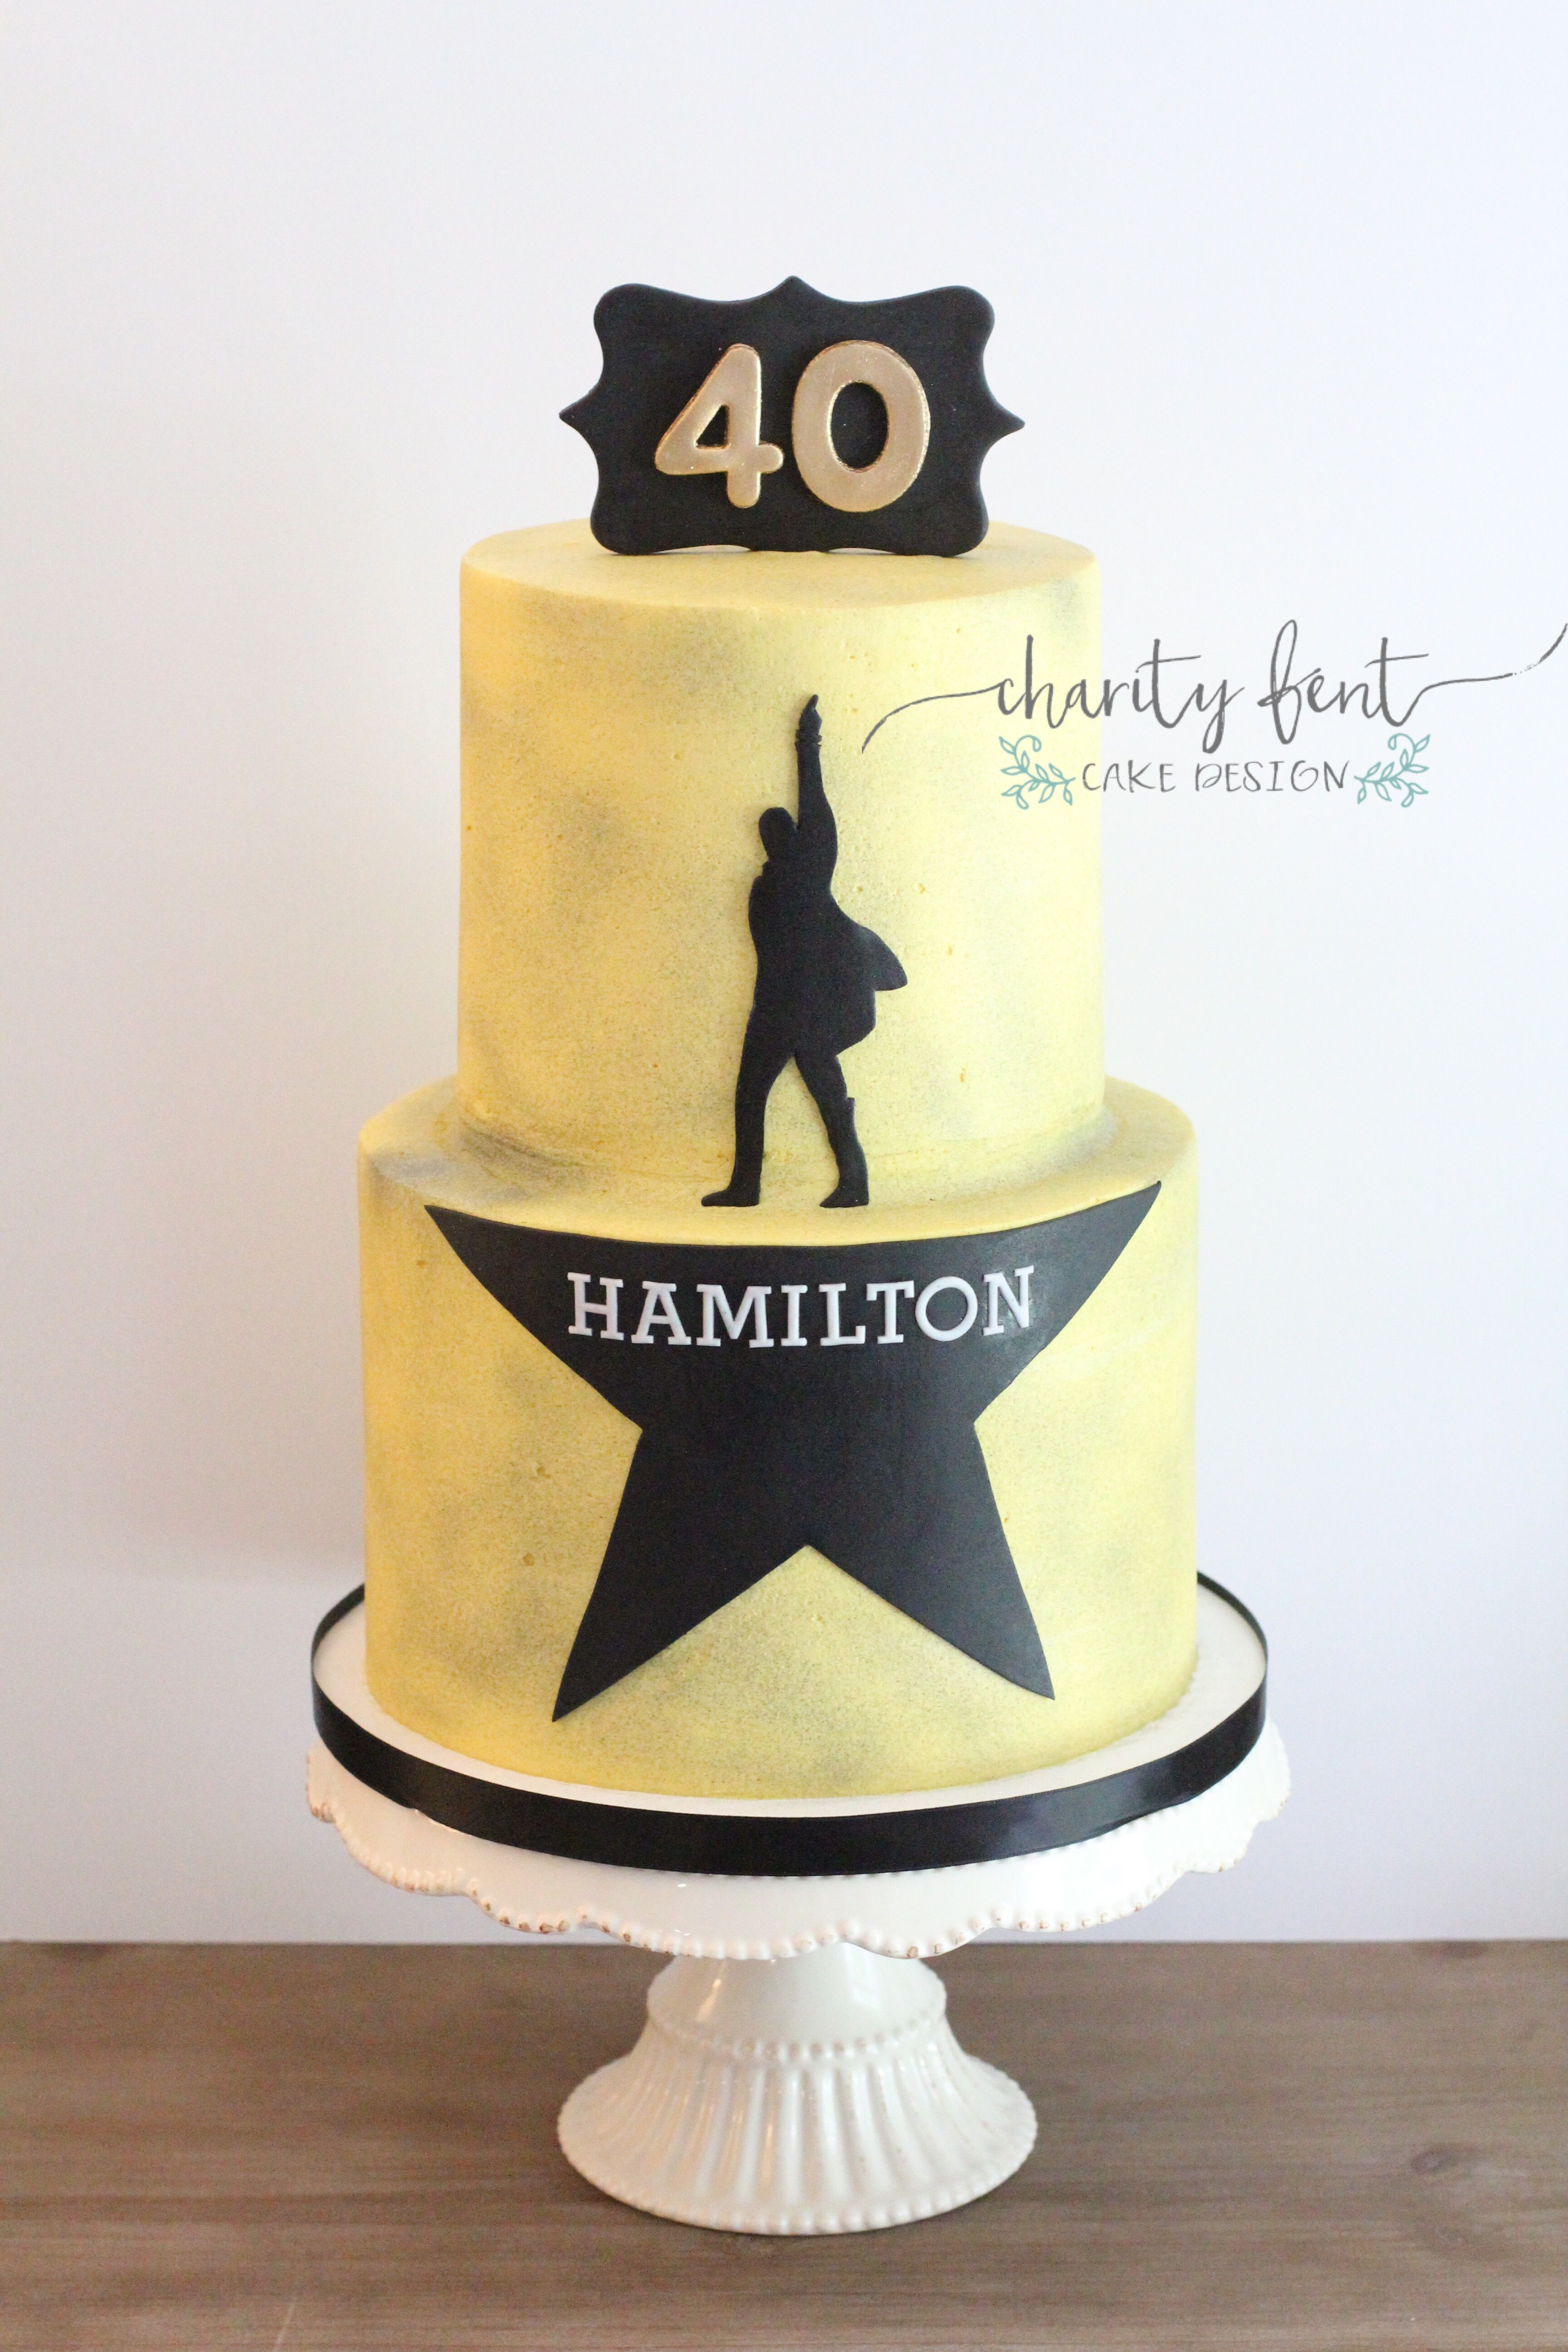 Groovy Birthday Cakes With Images Cake Rockstar Birthday Cake Design Funny Birthday Cards Online Alyptdamsfinfo